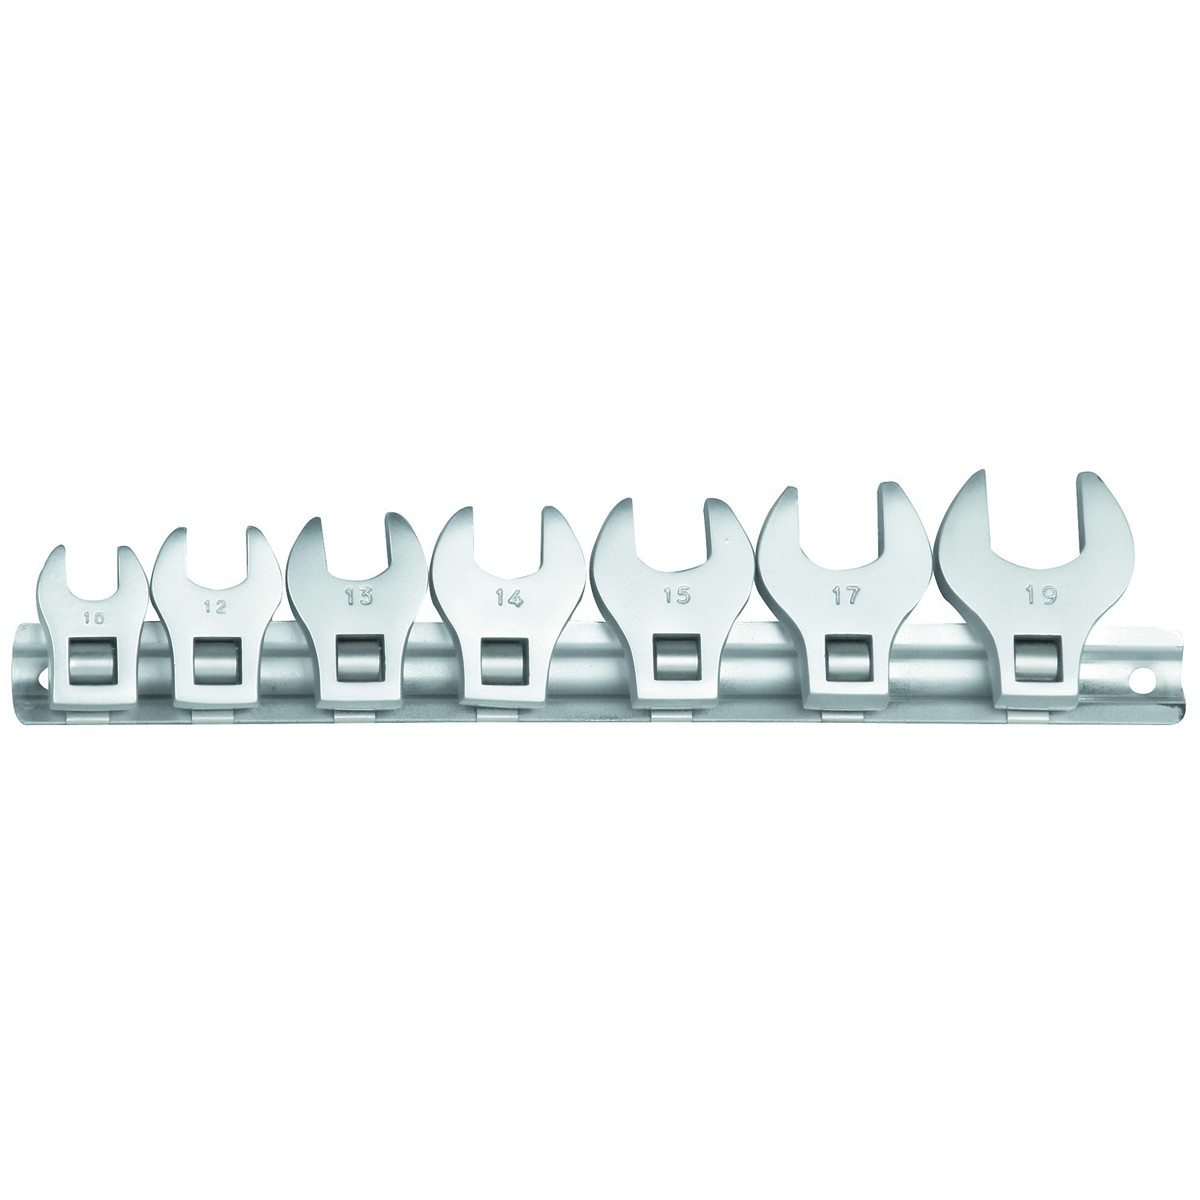 7 Pc 3/8 in. SAE Crowfoot Wrench Set